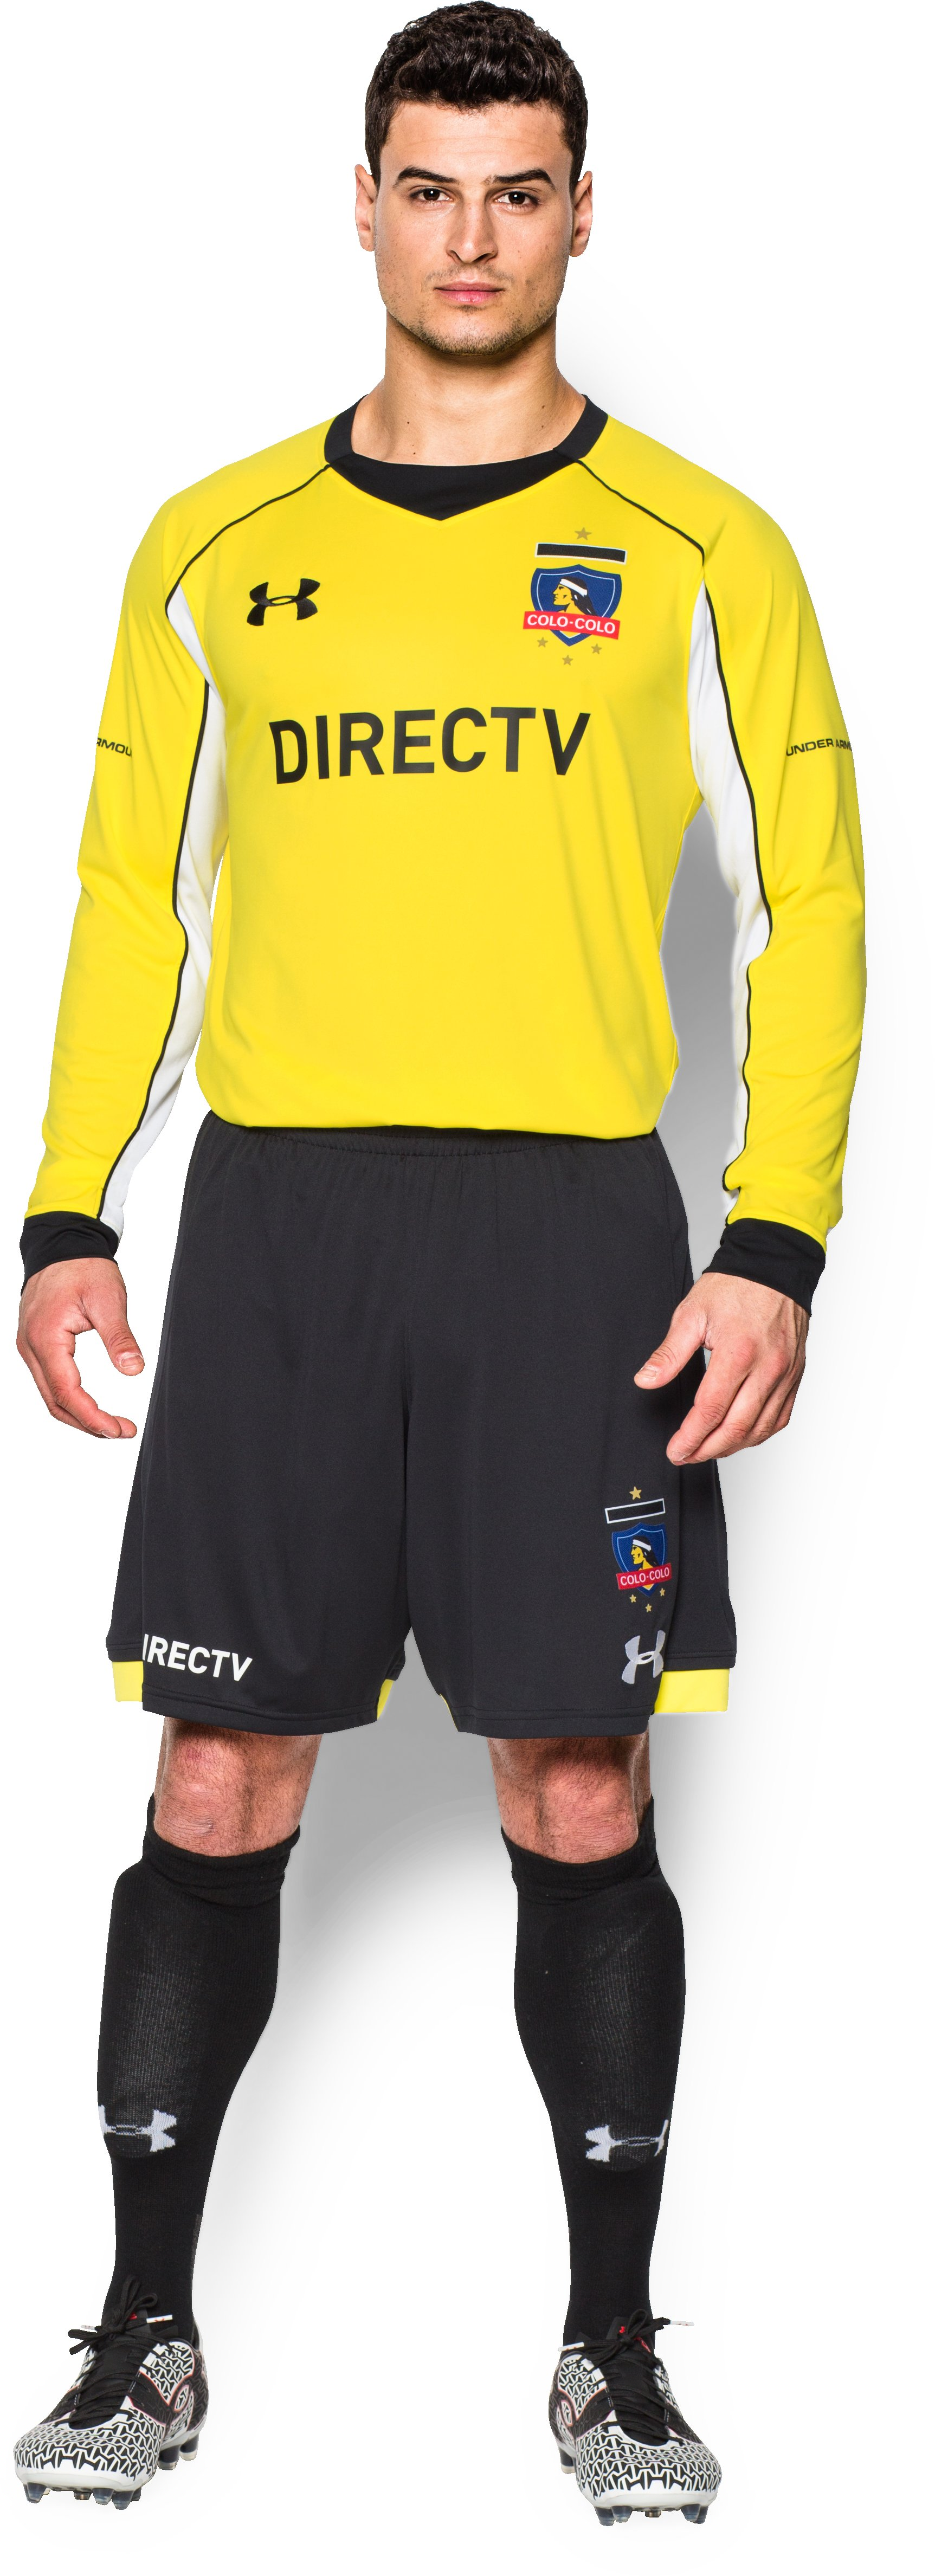 Men's Colo-Colo Goalkeeper Replica Jersey, Sunbleached, Front